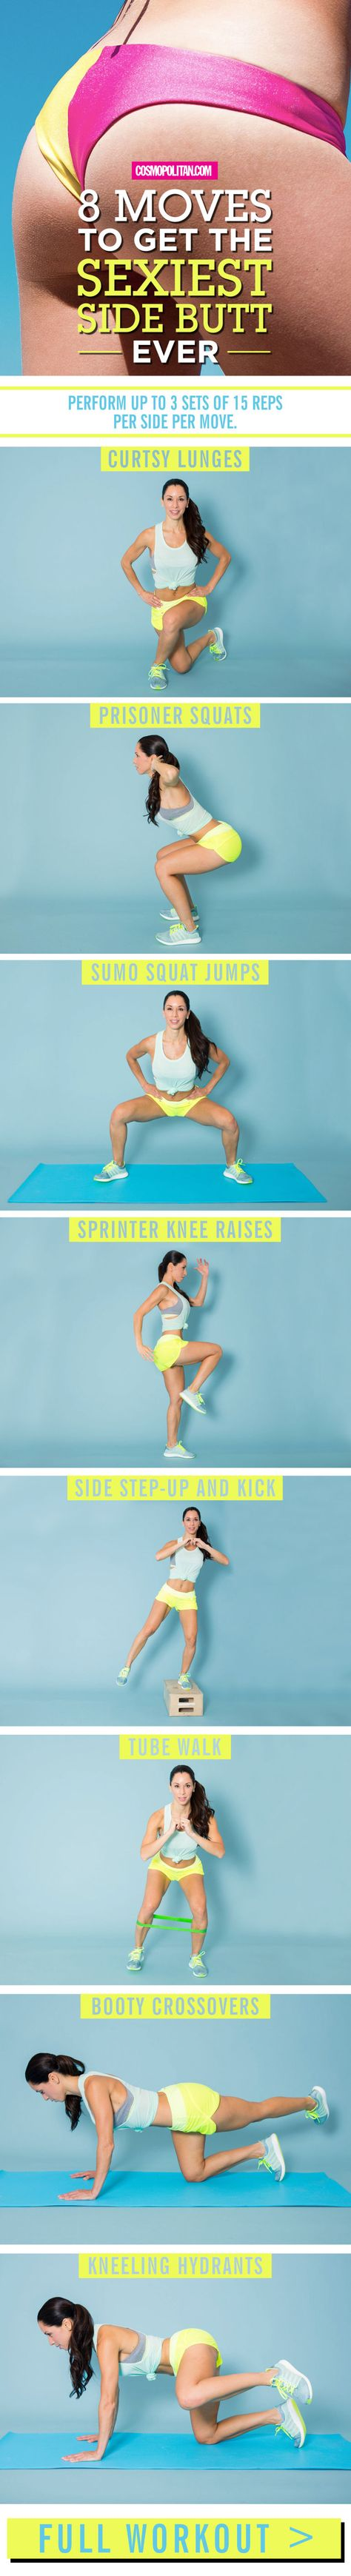 BUTT EXERCISES AND WORKOUT: Give your booty some sexy definition with the moves below, designed and demonstrated by fitness trainer, health coach, and fitness model Elizabeth Bracero. You'll want to complete up to three sets of 15 reps of each move on each side. Click through for the complete workout and for more fitness tips. And find more fitness ideas and free workouts you can do at home at Cosmopolitan.com.